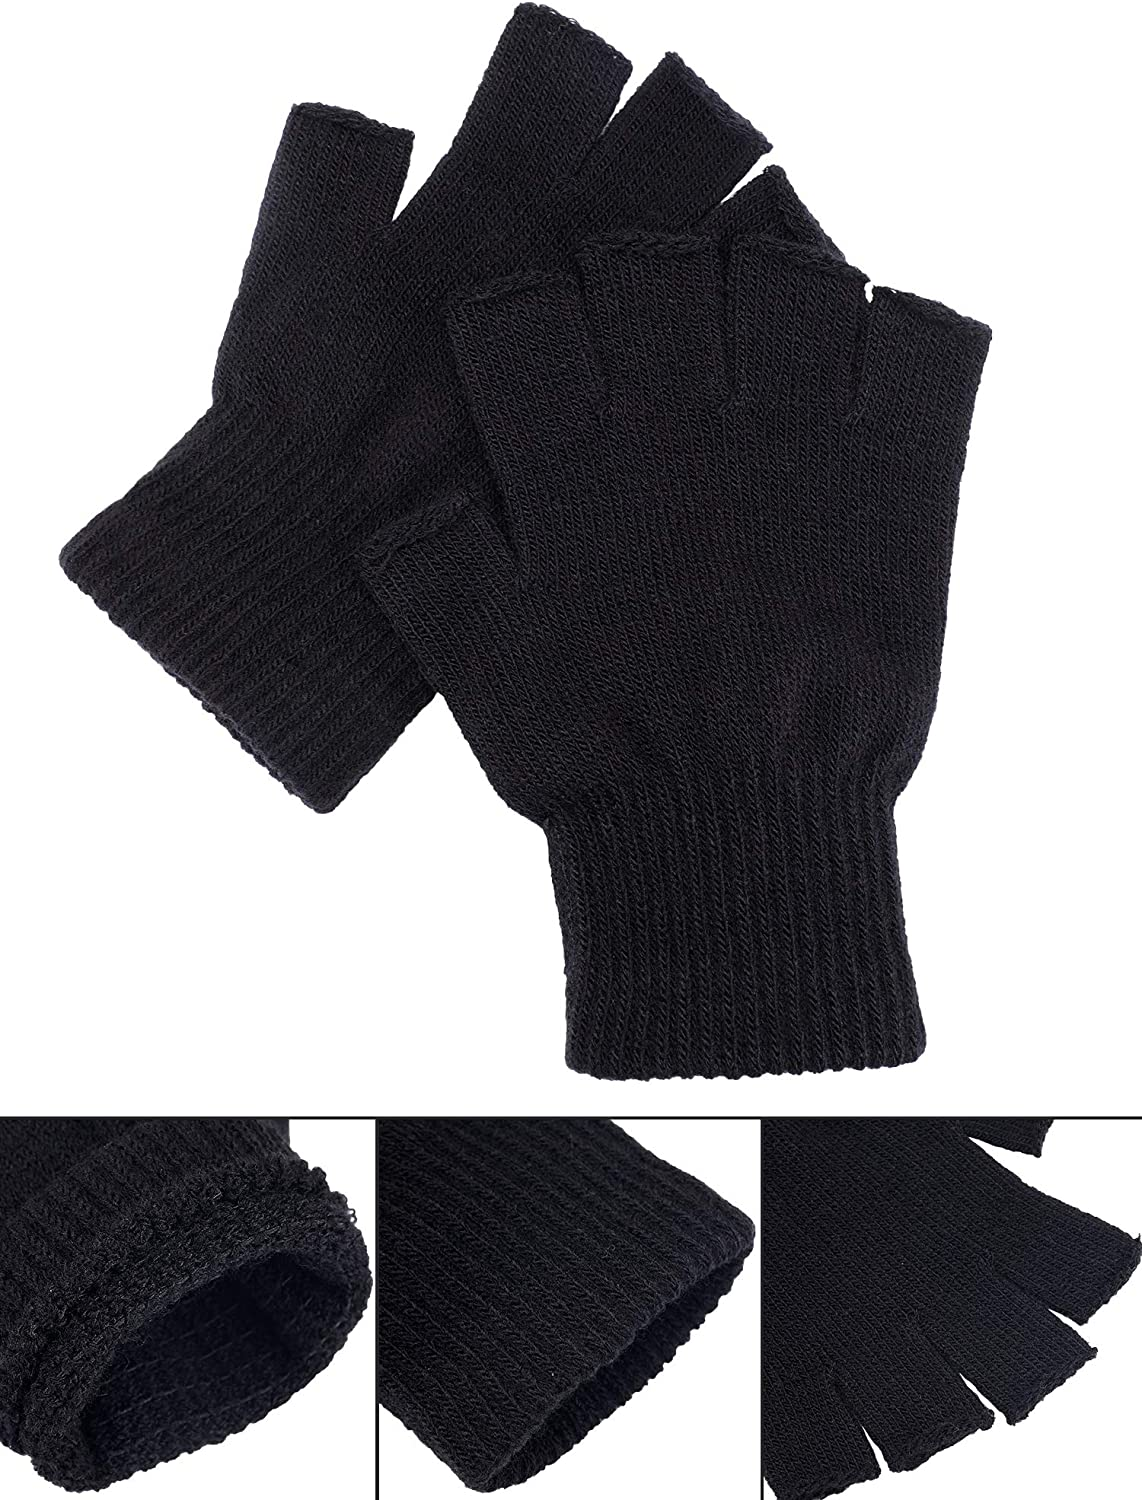 Satinior 2 Pair Black Half Finger Gloves Unisex Winter Stretchy Knit Fingerless Gloves, Common Size at  Men's Clothing store